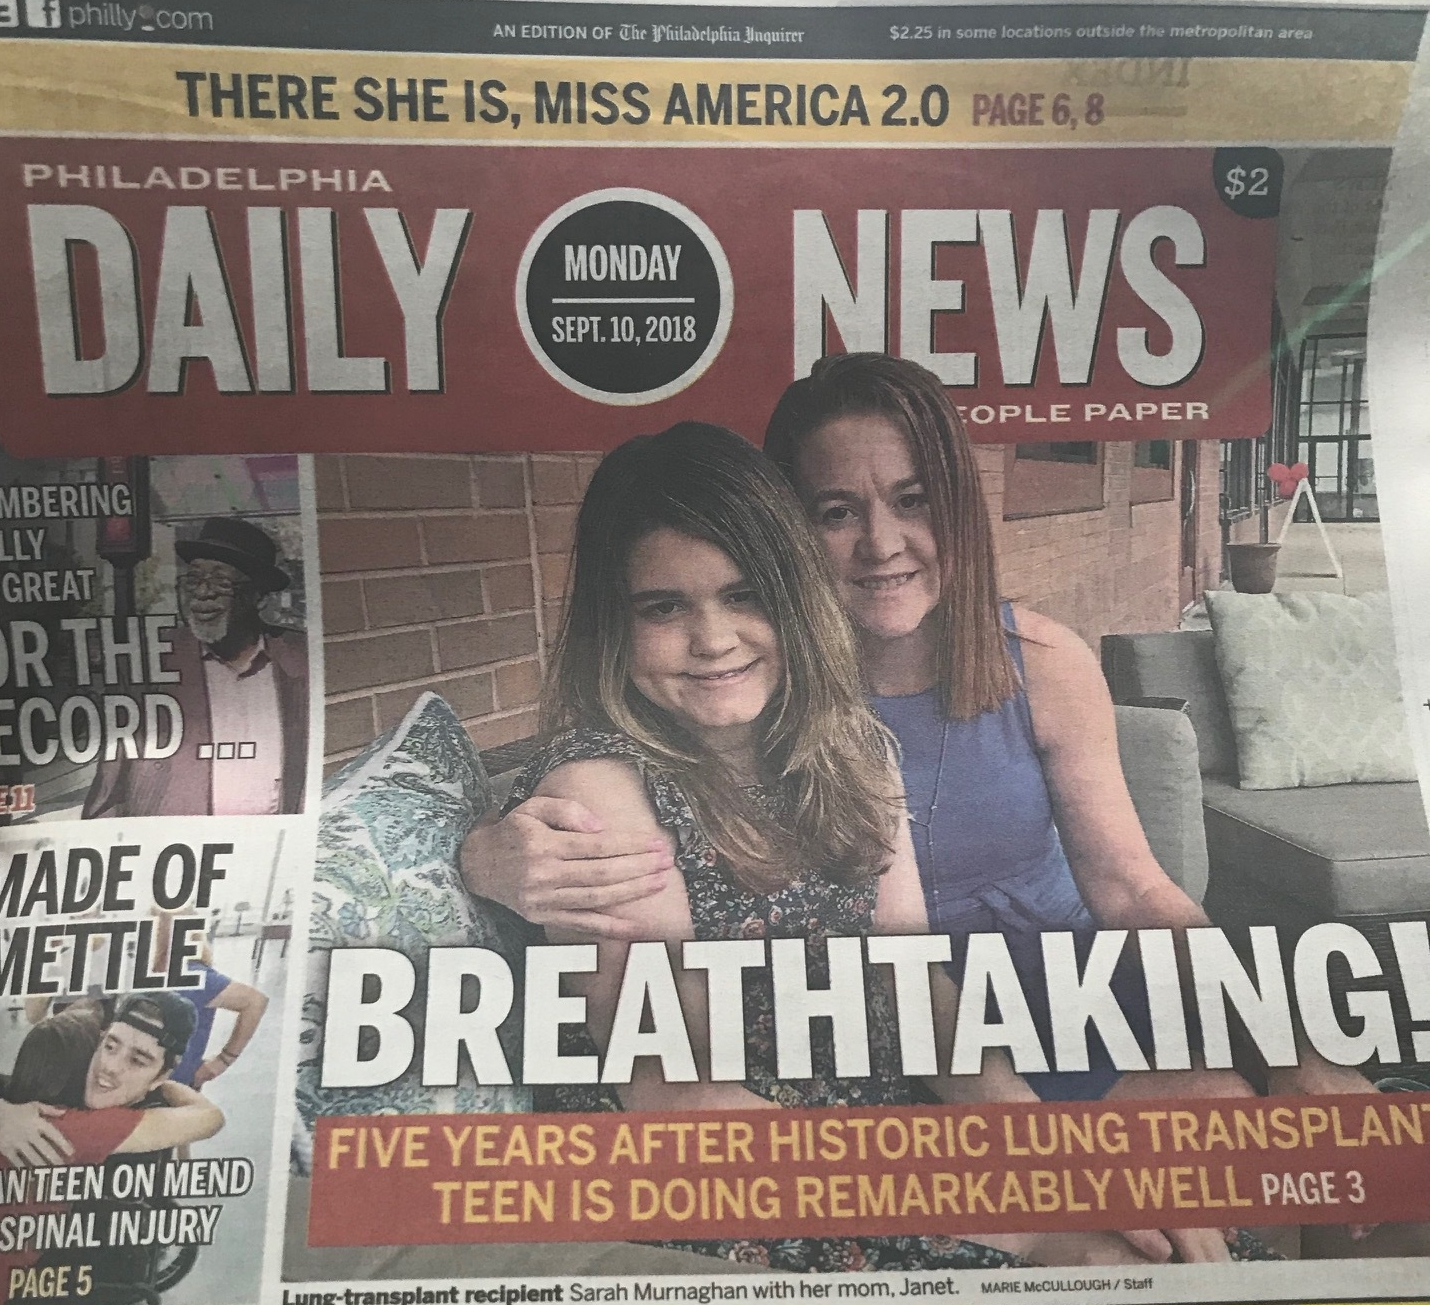 NYC & Philly tour - In one week, the amazing Murnaghan duo hit NYC and Philly to appear on Fox and Friends; Good Morning America; the front page of the Philadelphia Inquirer and Daily News; KYW News Radio, and Fox 29.